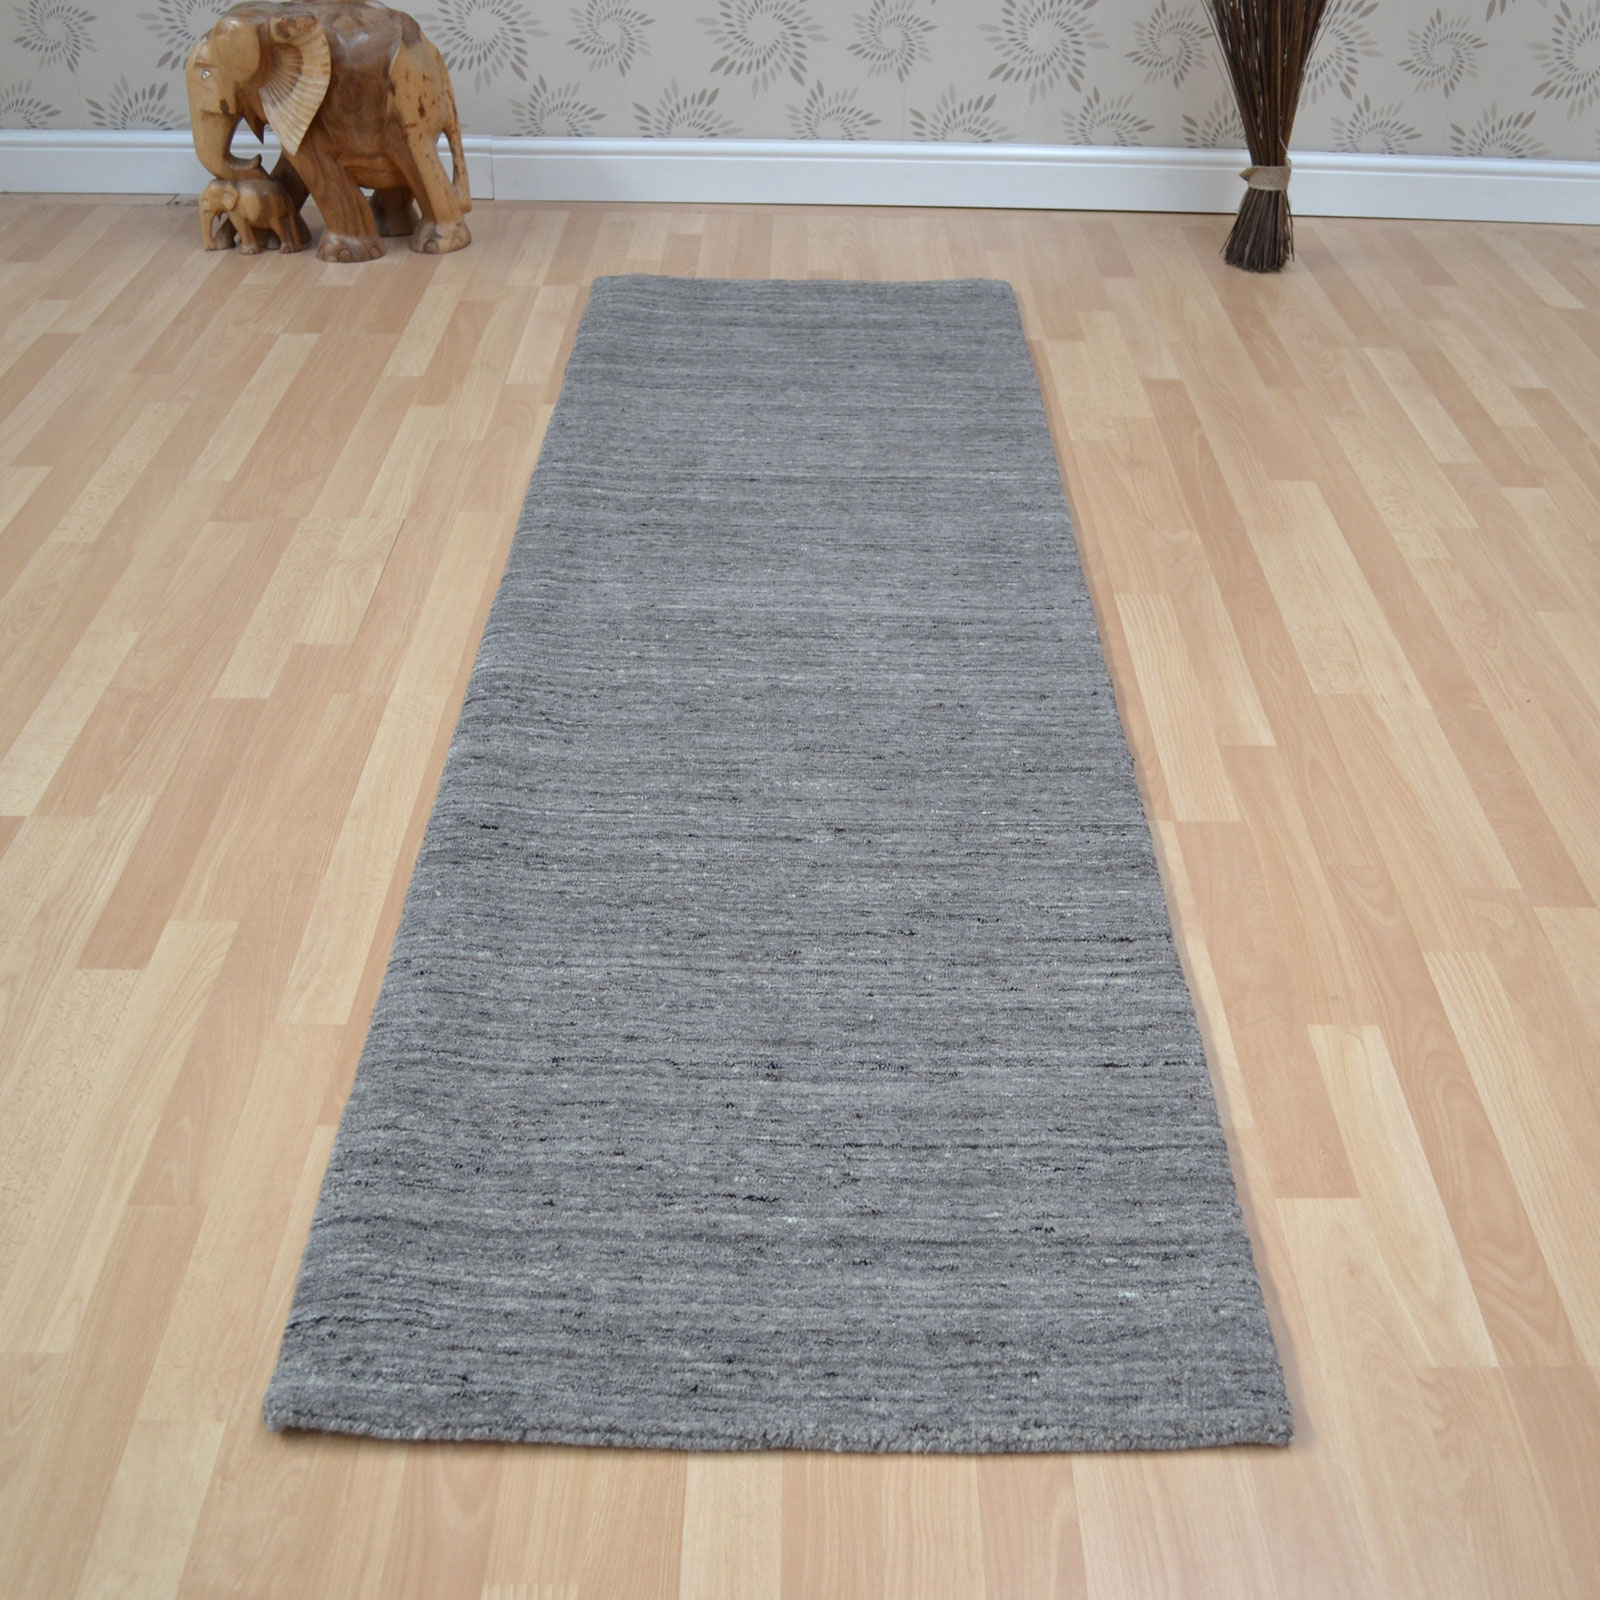 Abrash Hallway Runners - Buy Online at The Rug Seller